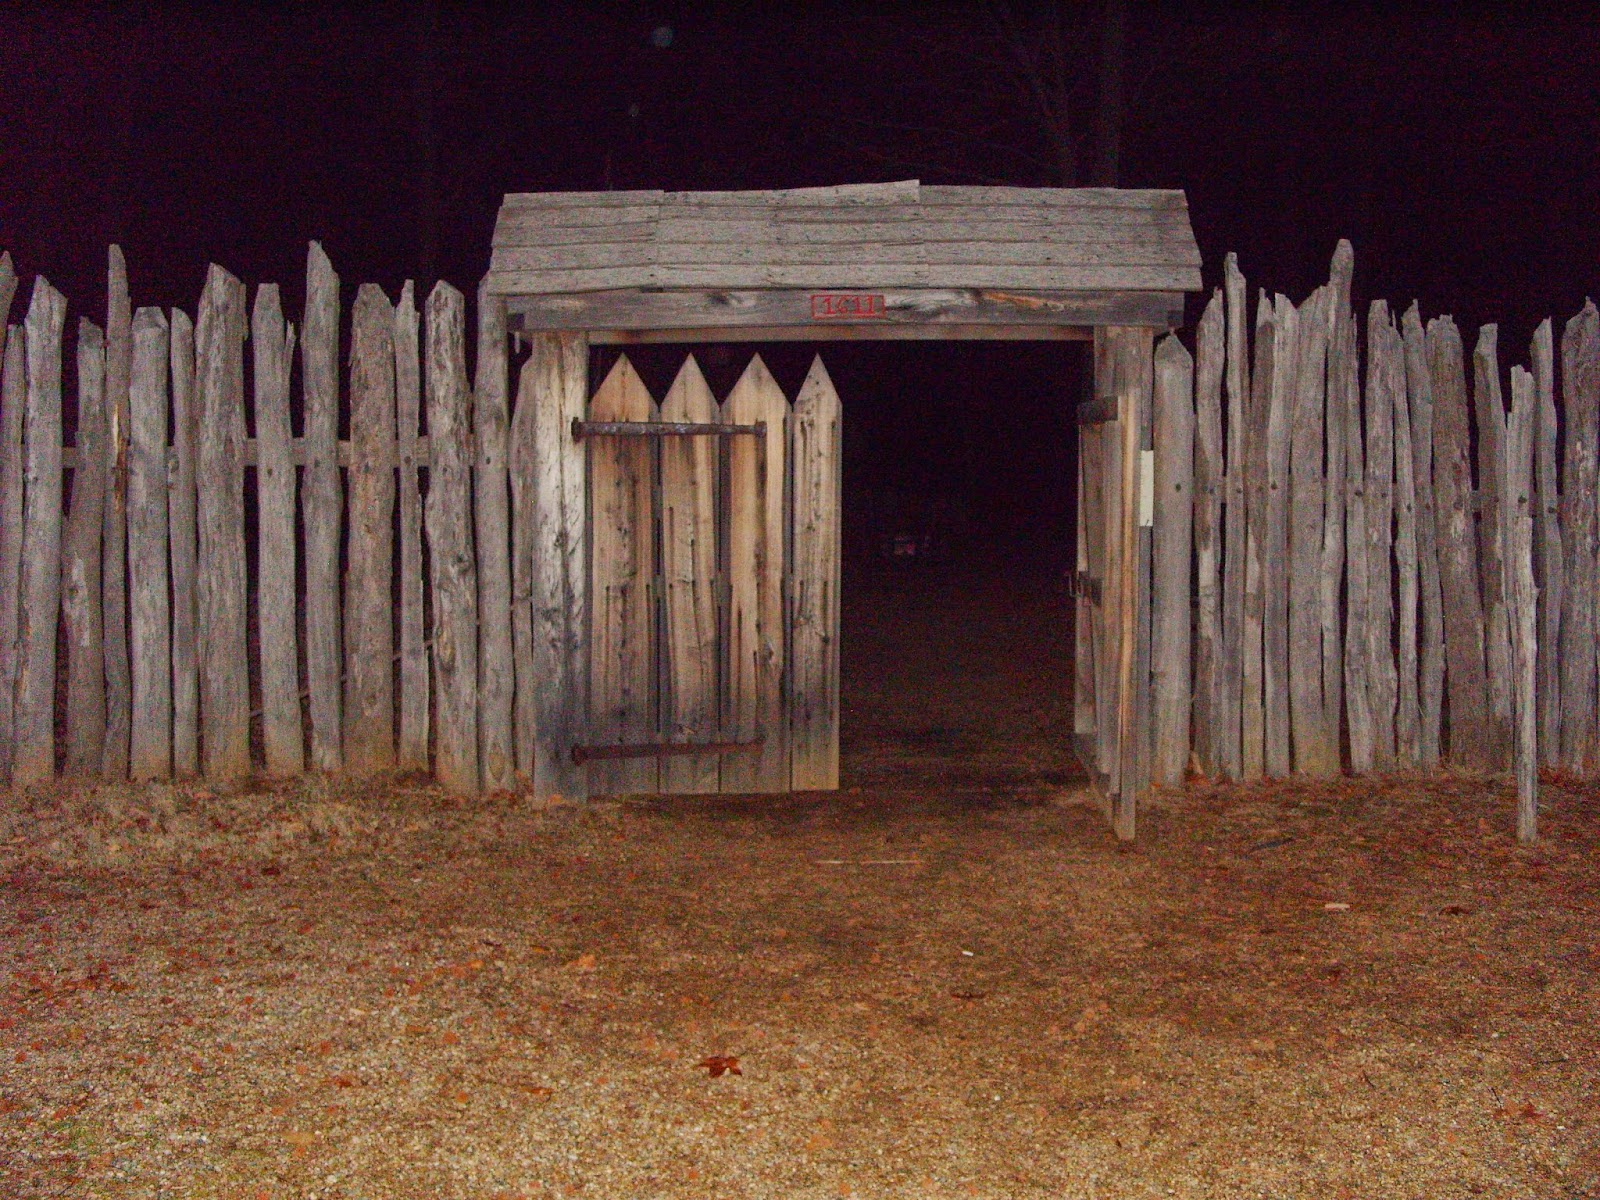 Chester, Virginia: Not Only Will You Find History About The English  Settlement Of Henricus In Chesterfield County, But Spirits Haunting The  Area, Too